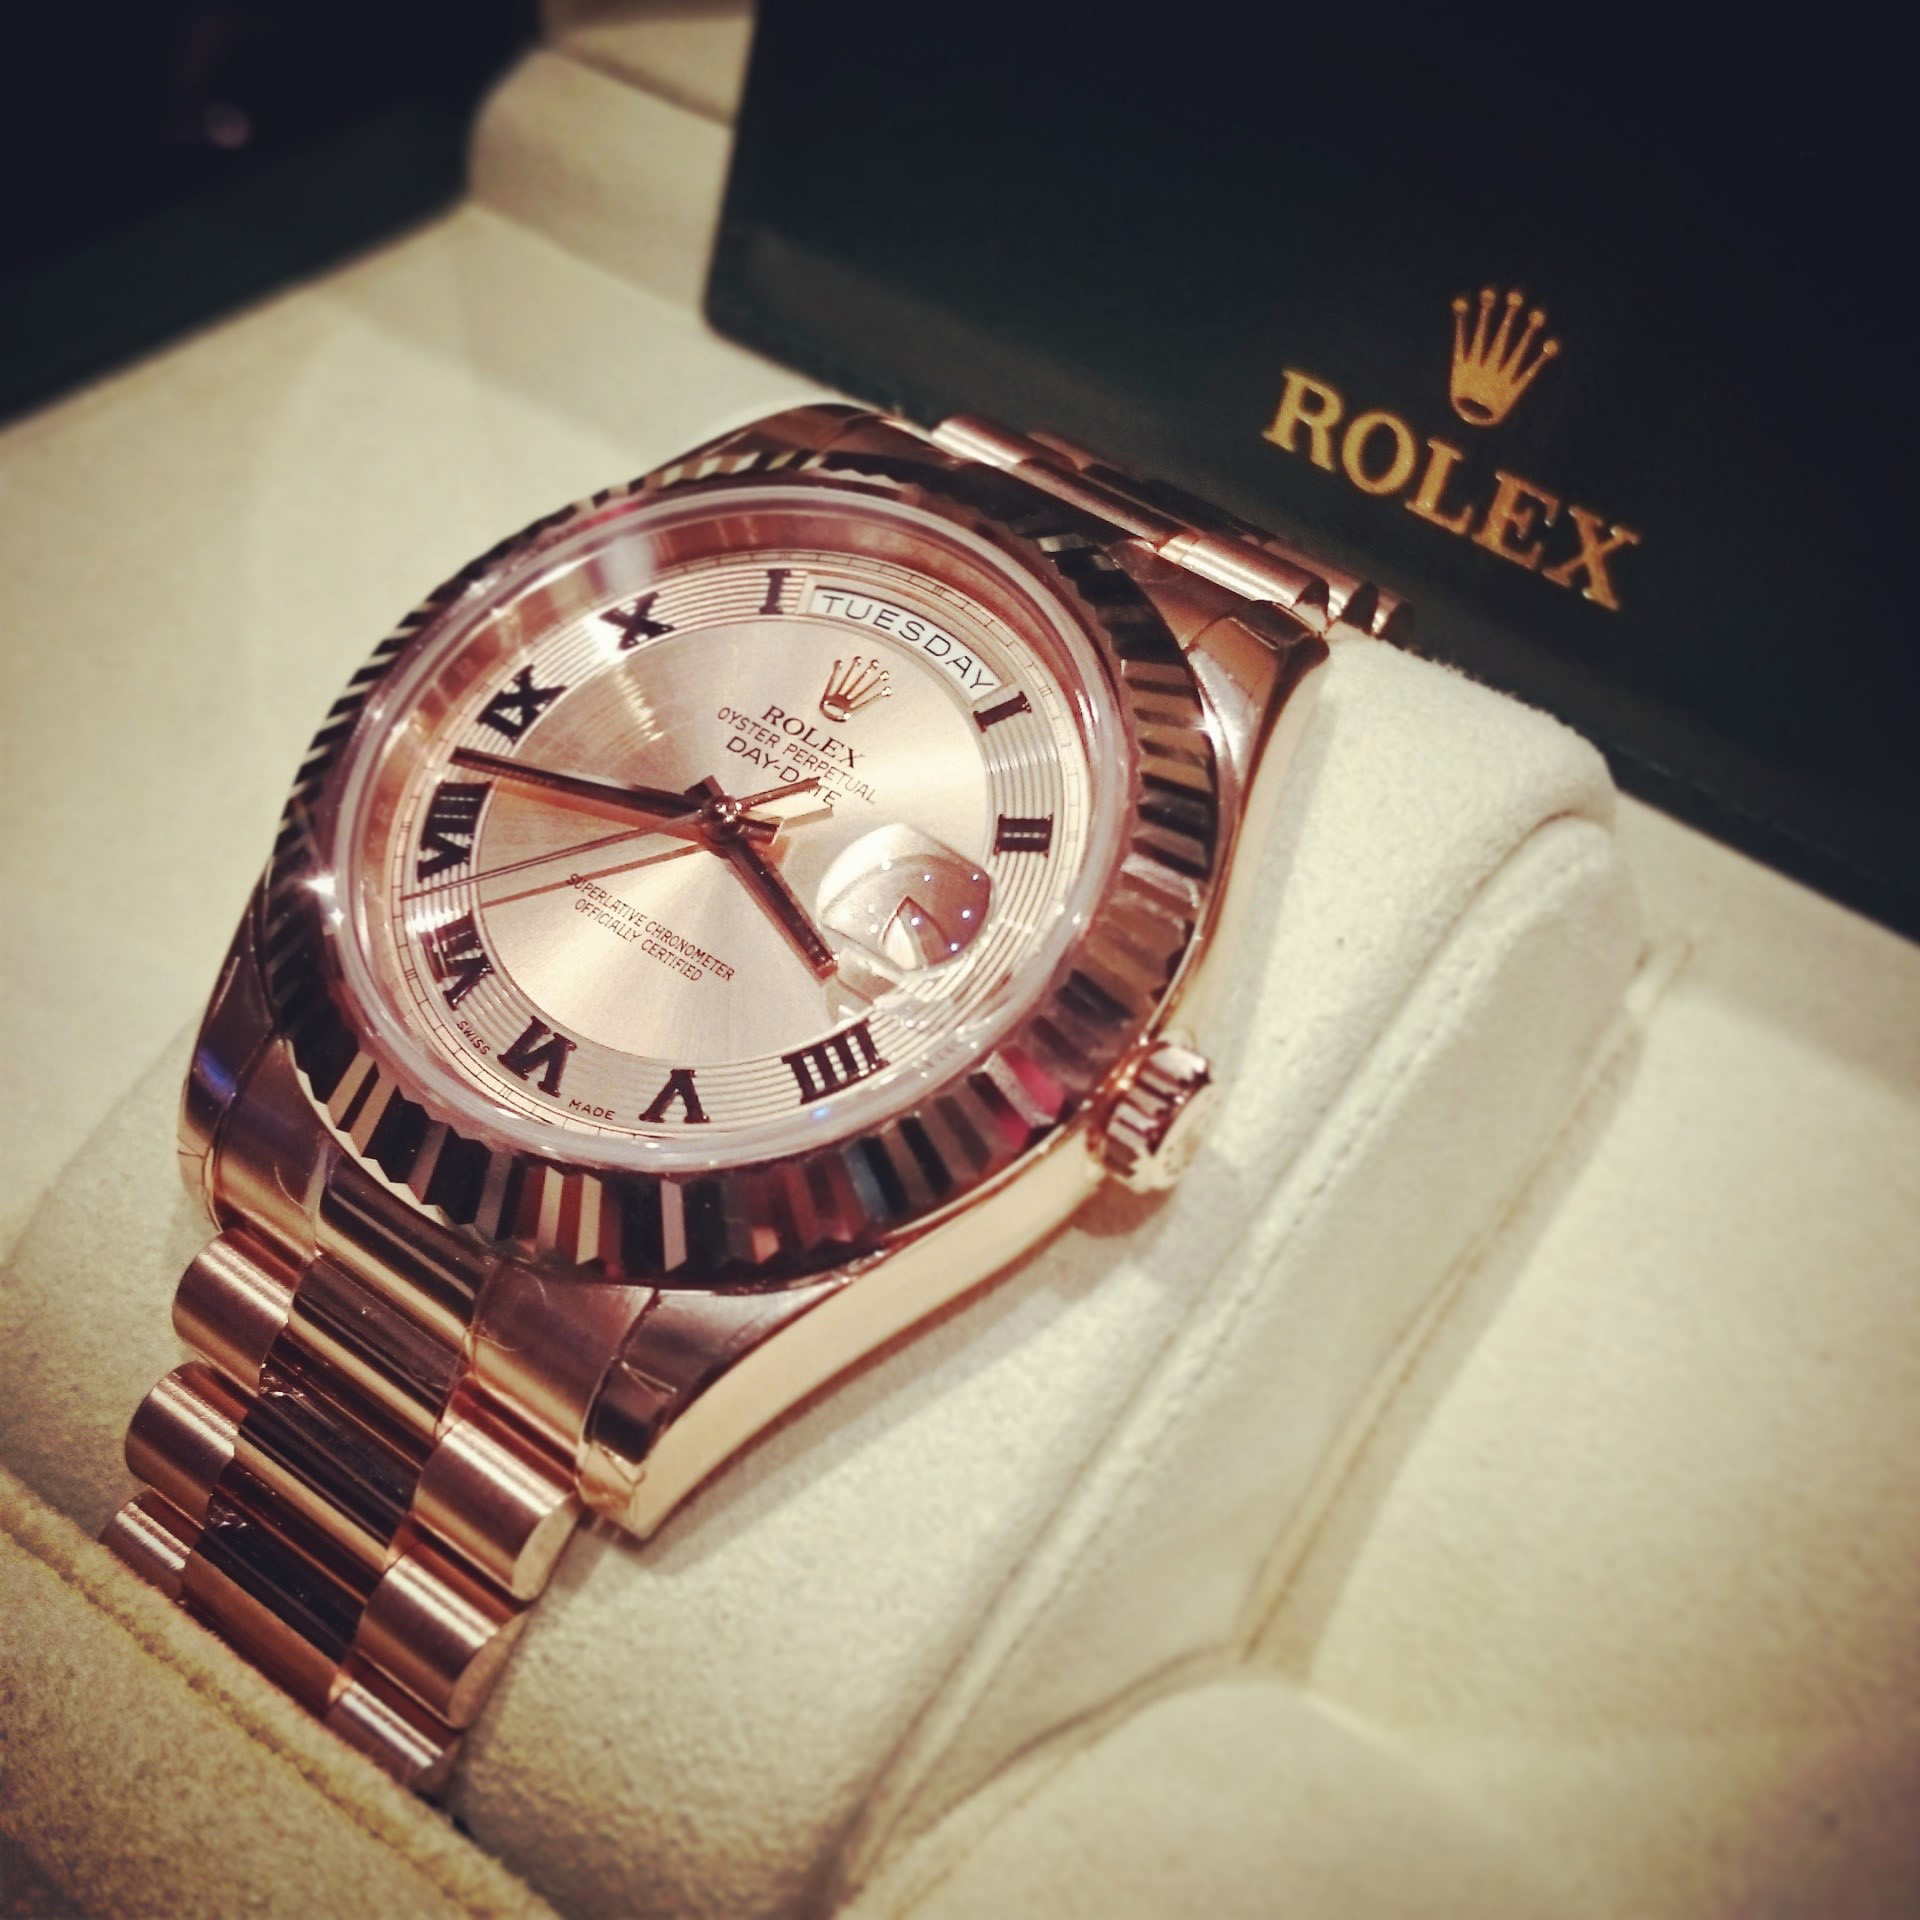 Rolex Day date watch